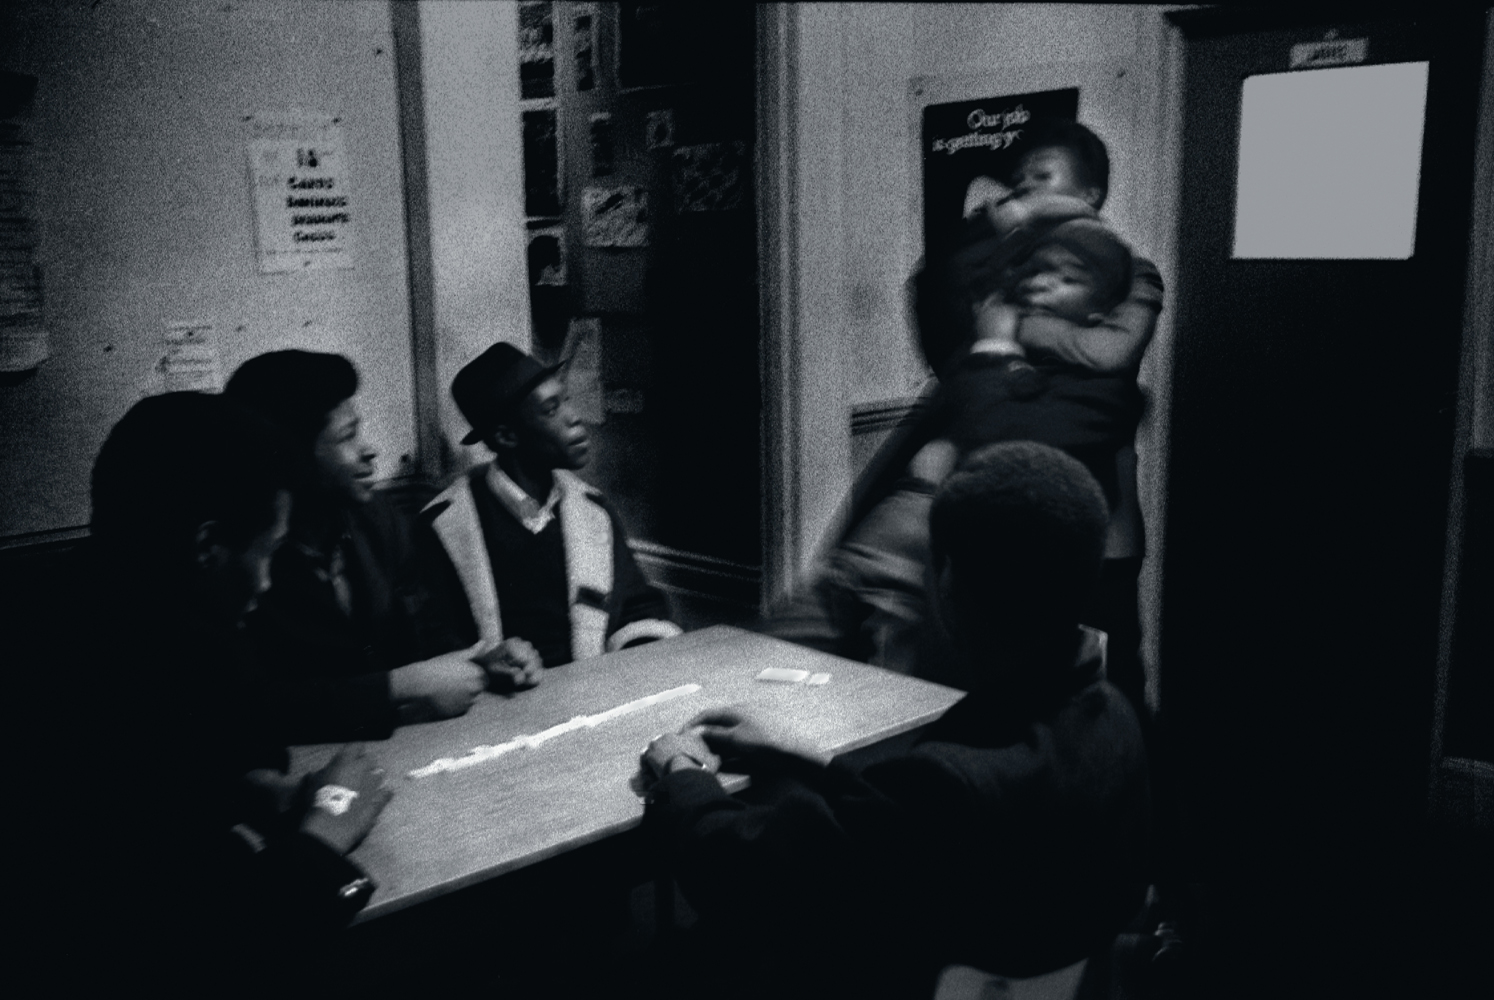 062 Game gone bad, Youth Centre, London .jpg